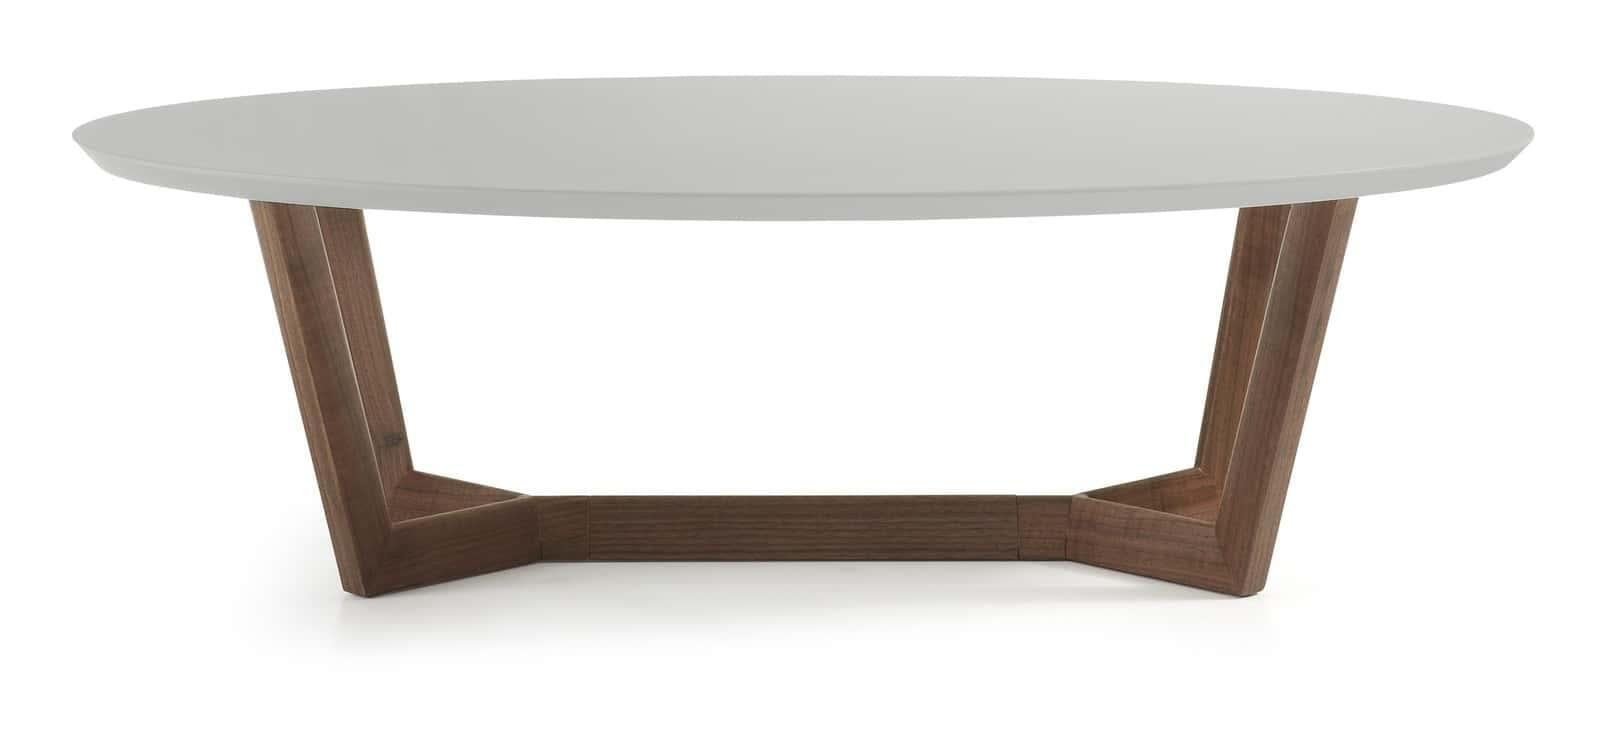 Eastin Coffee Table - Walnut and Light Grey